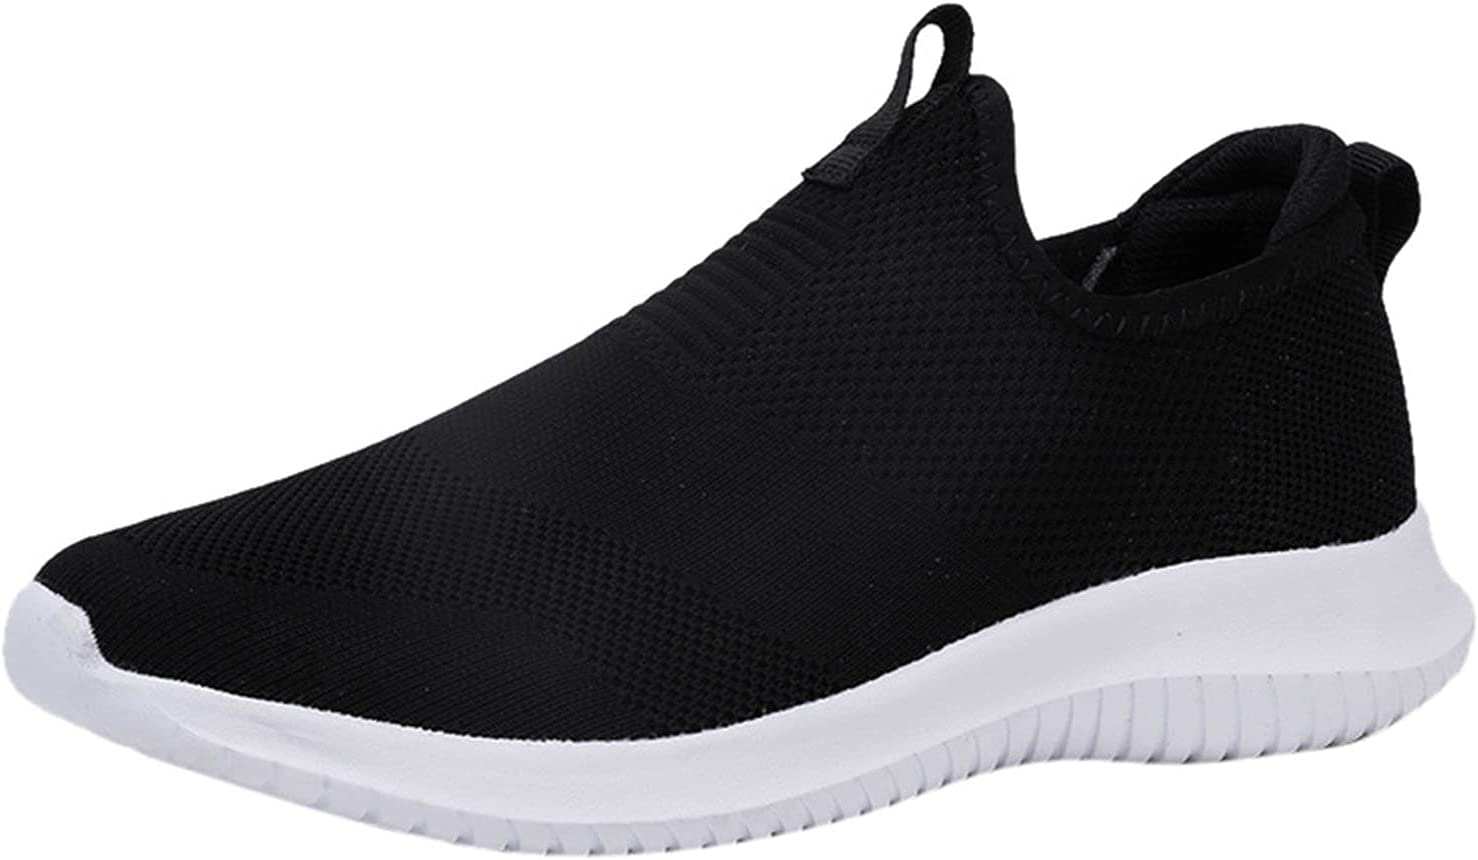 Slip On Walking Shoes for Women Mens Lightweight Breathable Non Slip Running Shoes Comfortable Fashion Sneakers(Black,6)